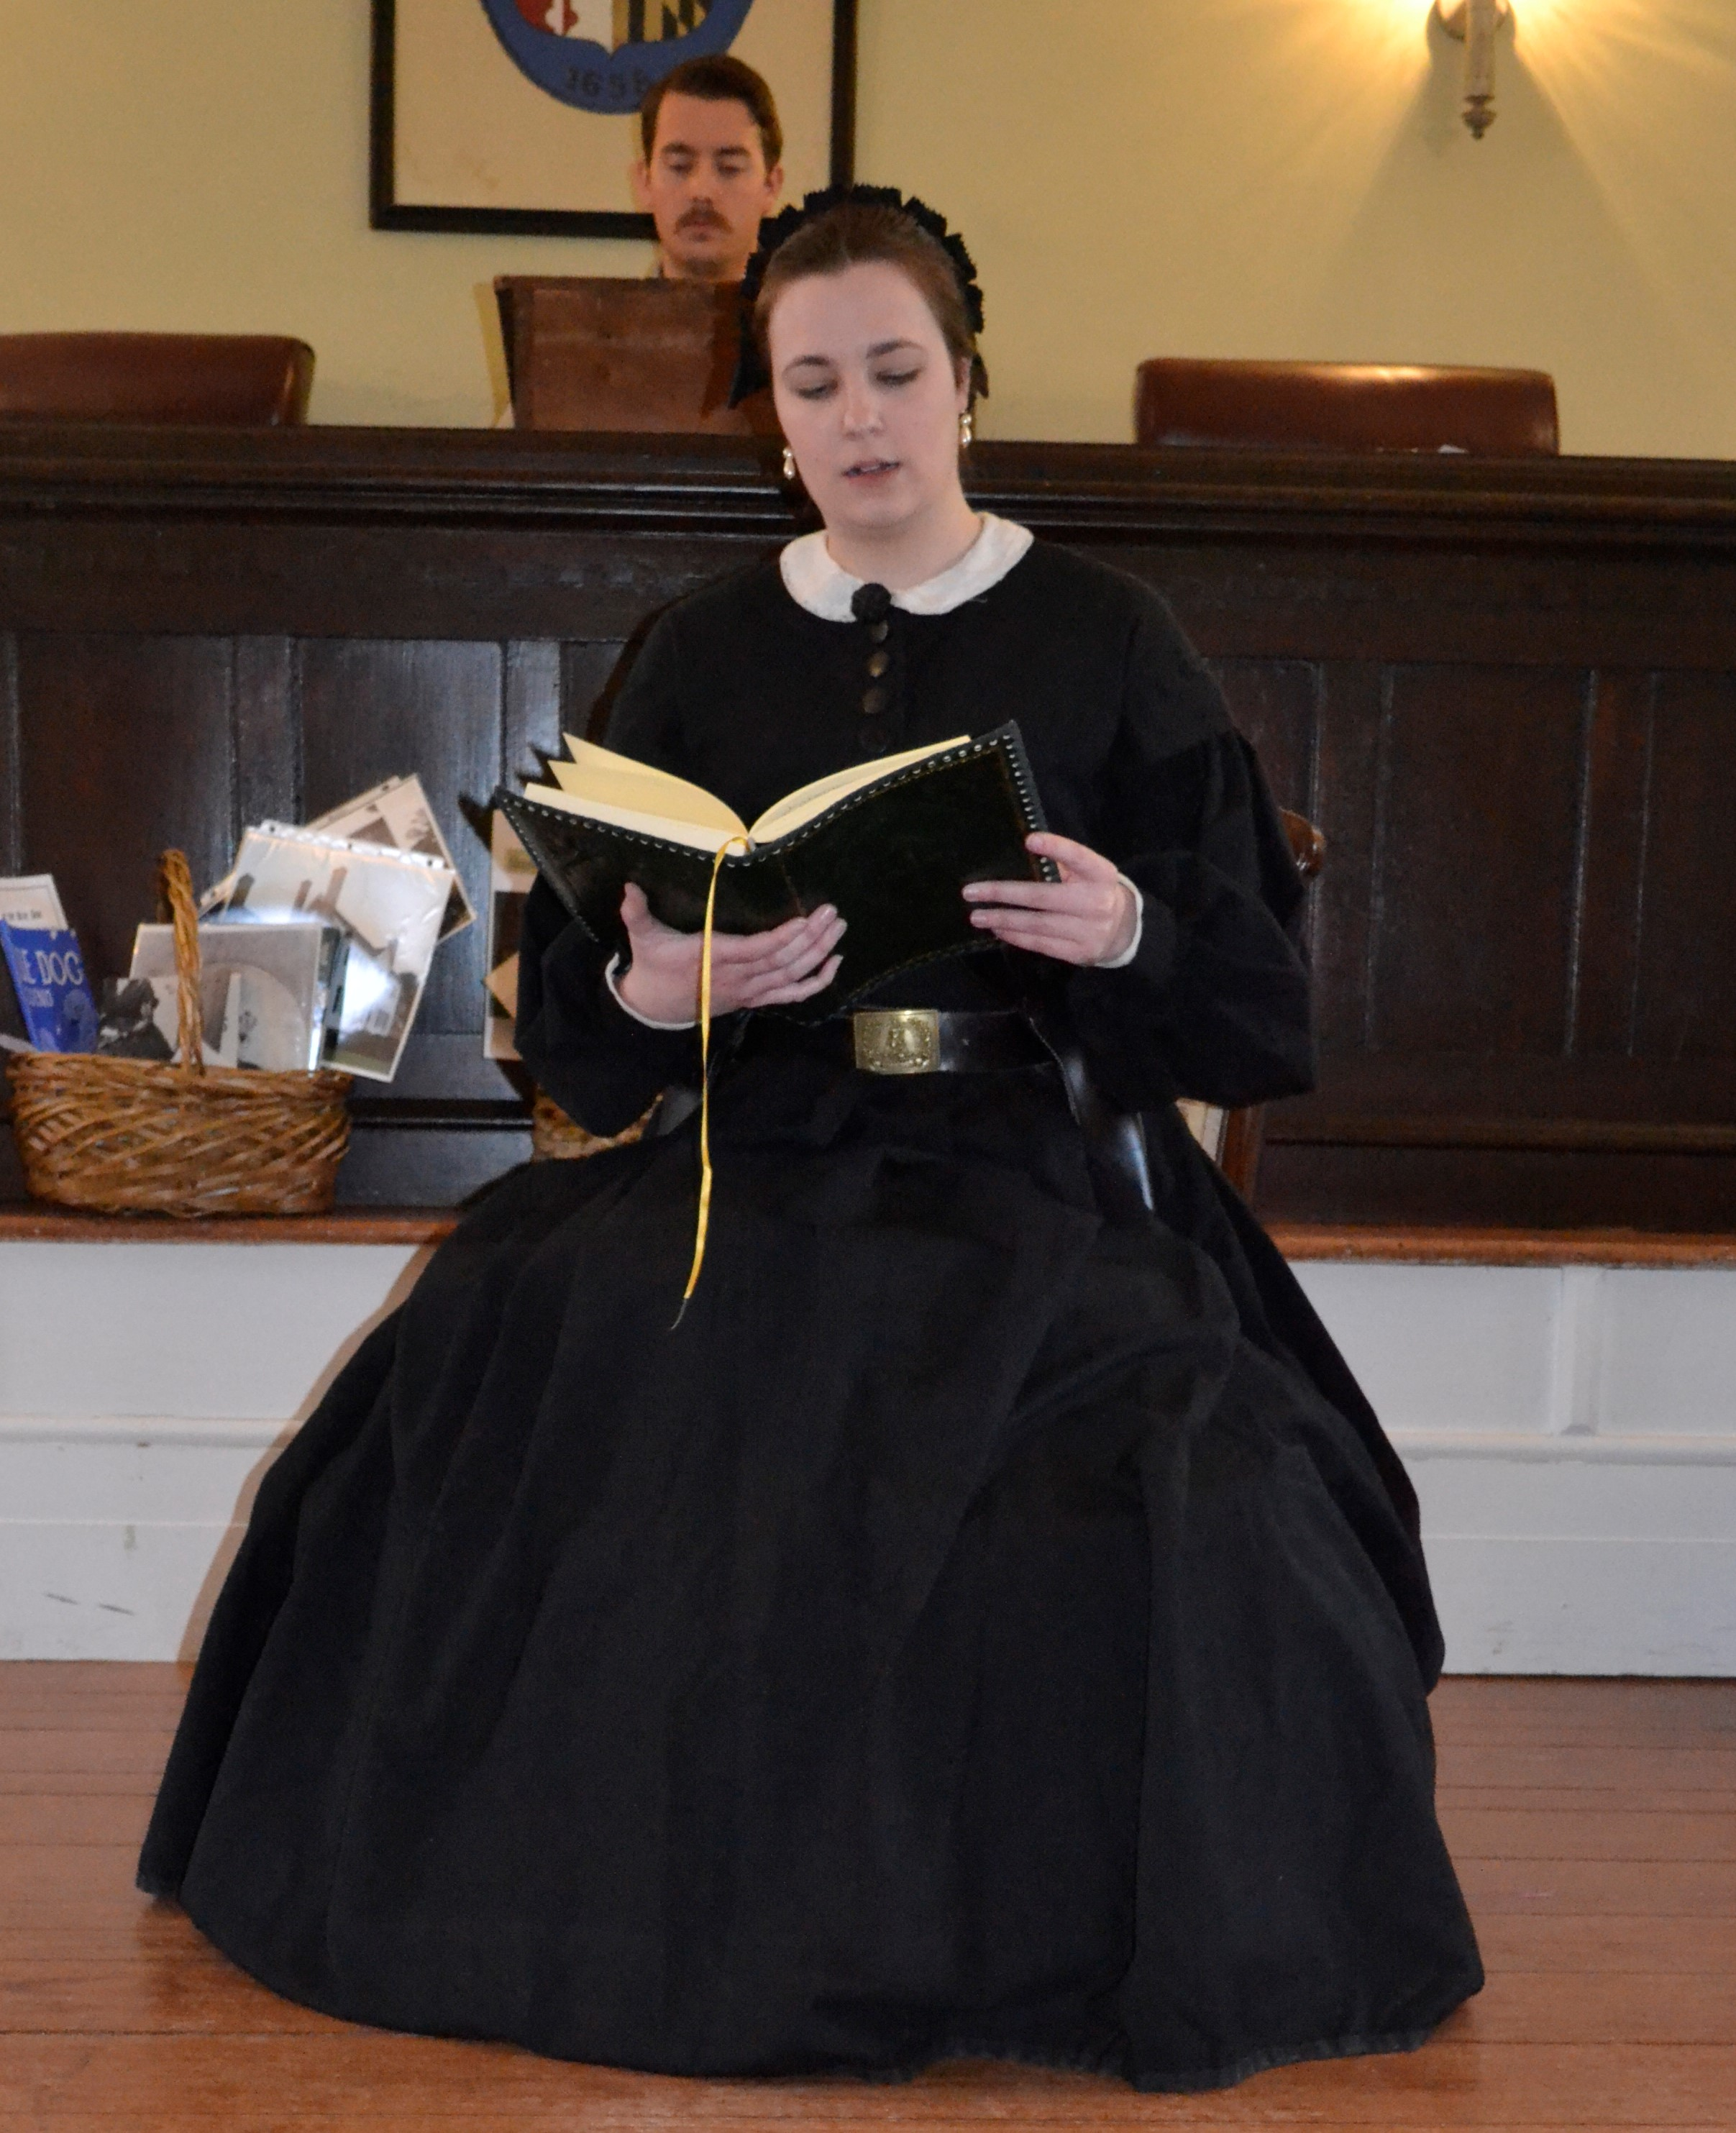 Kate Ramirez portraying Mary Surratt